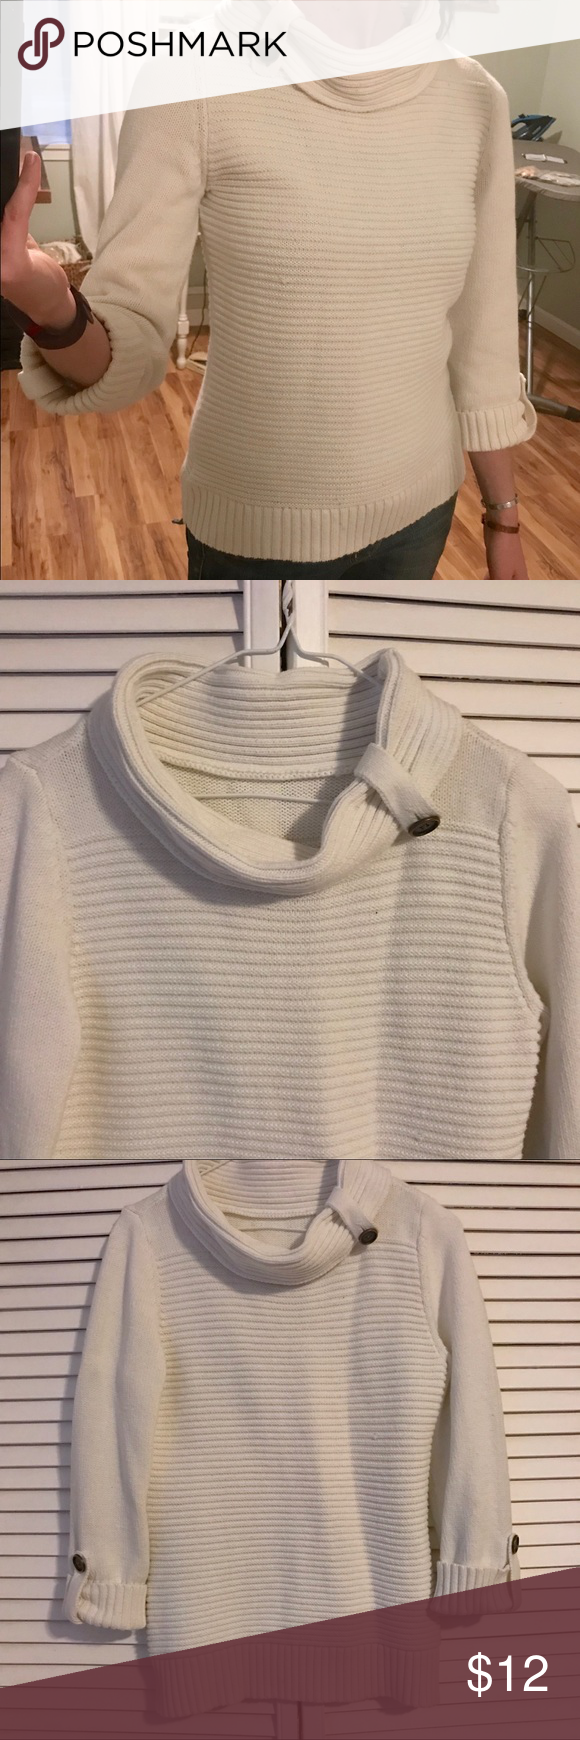 Cream cotton 3/4 sleeve turtleneck sweater